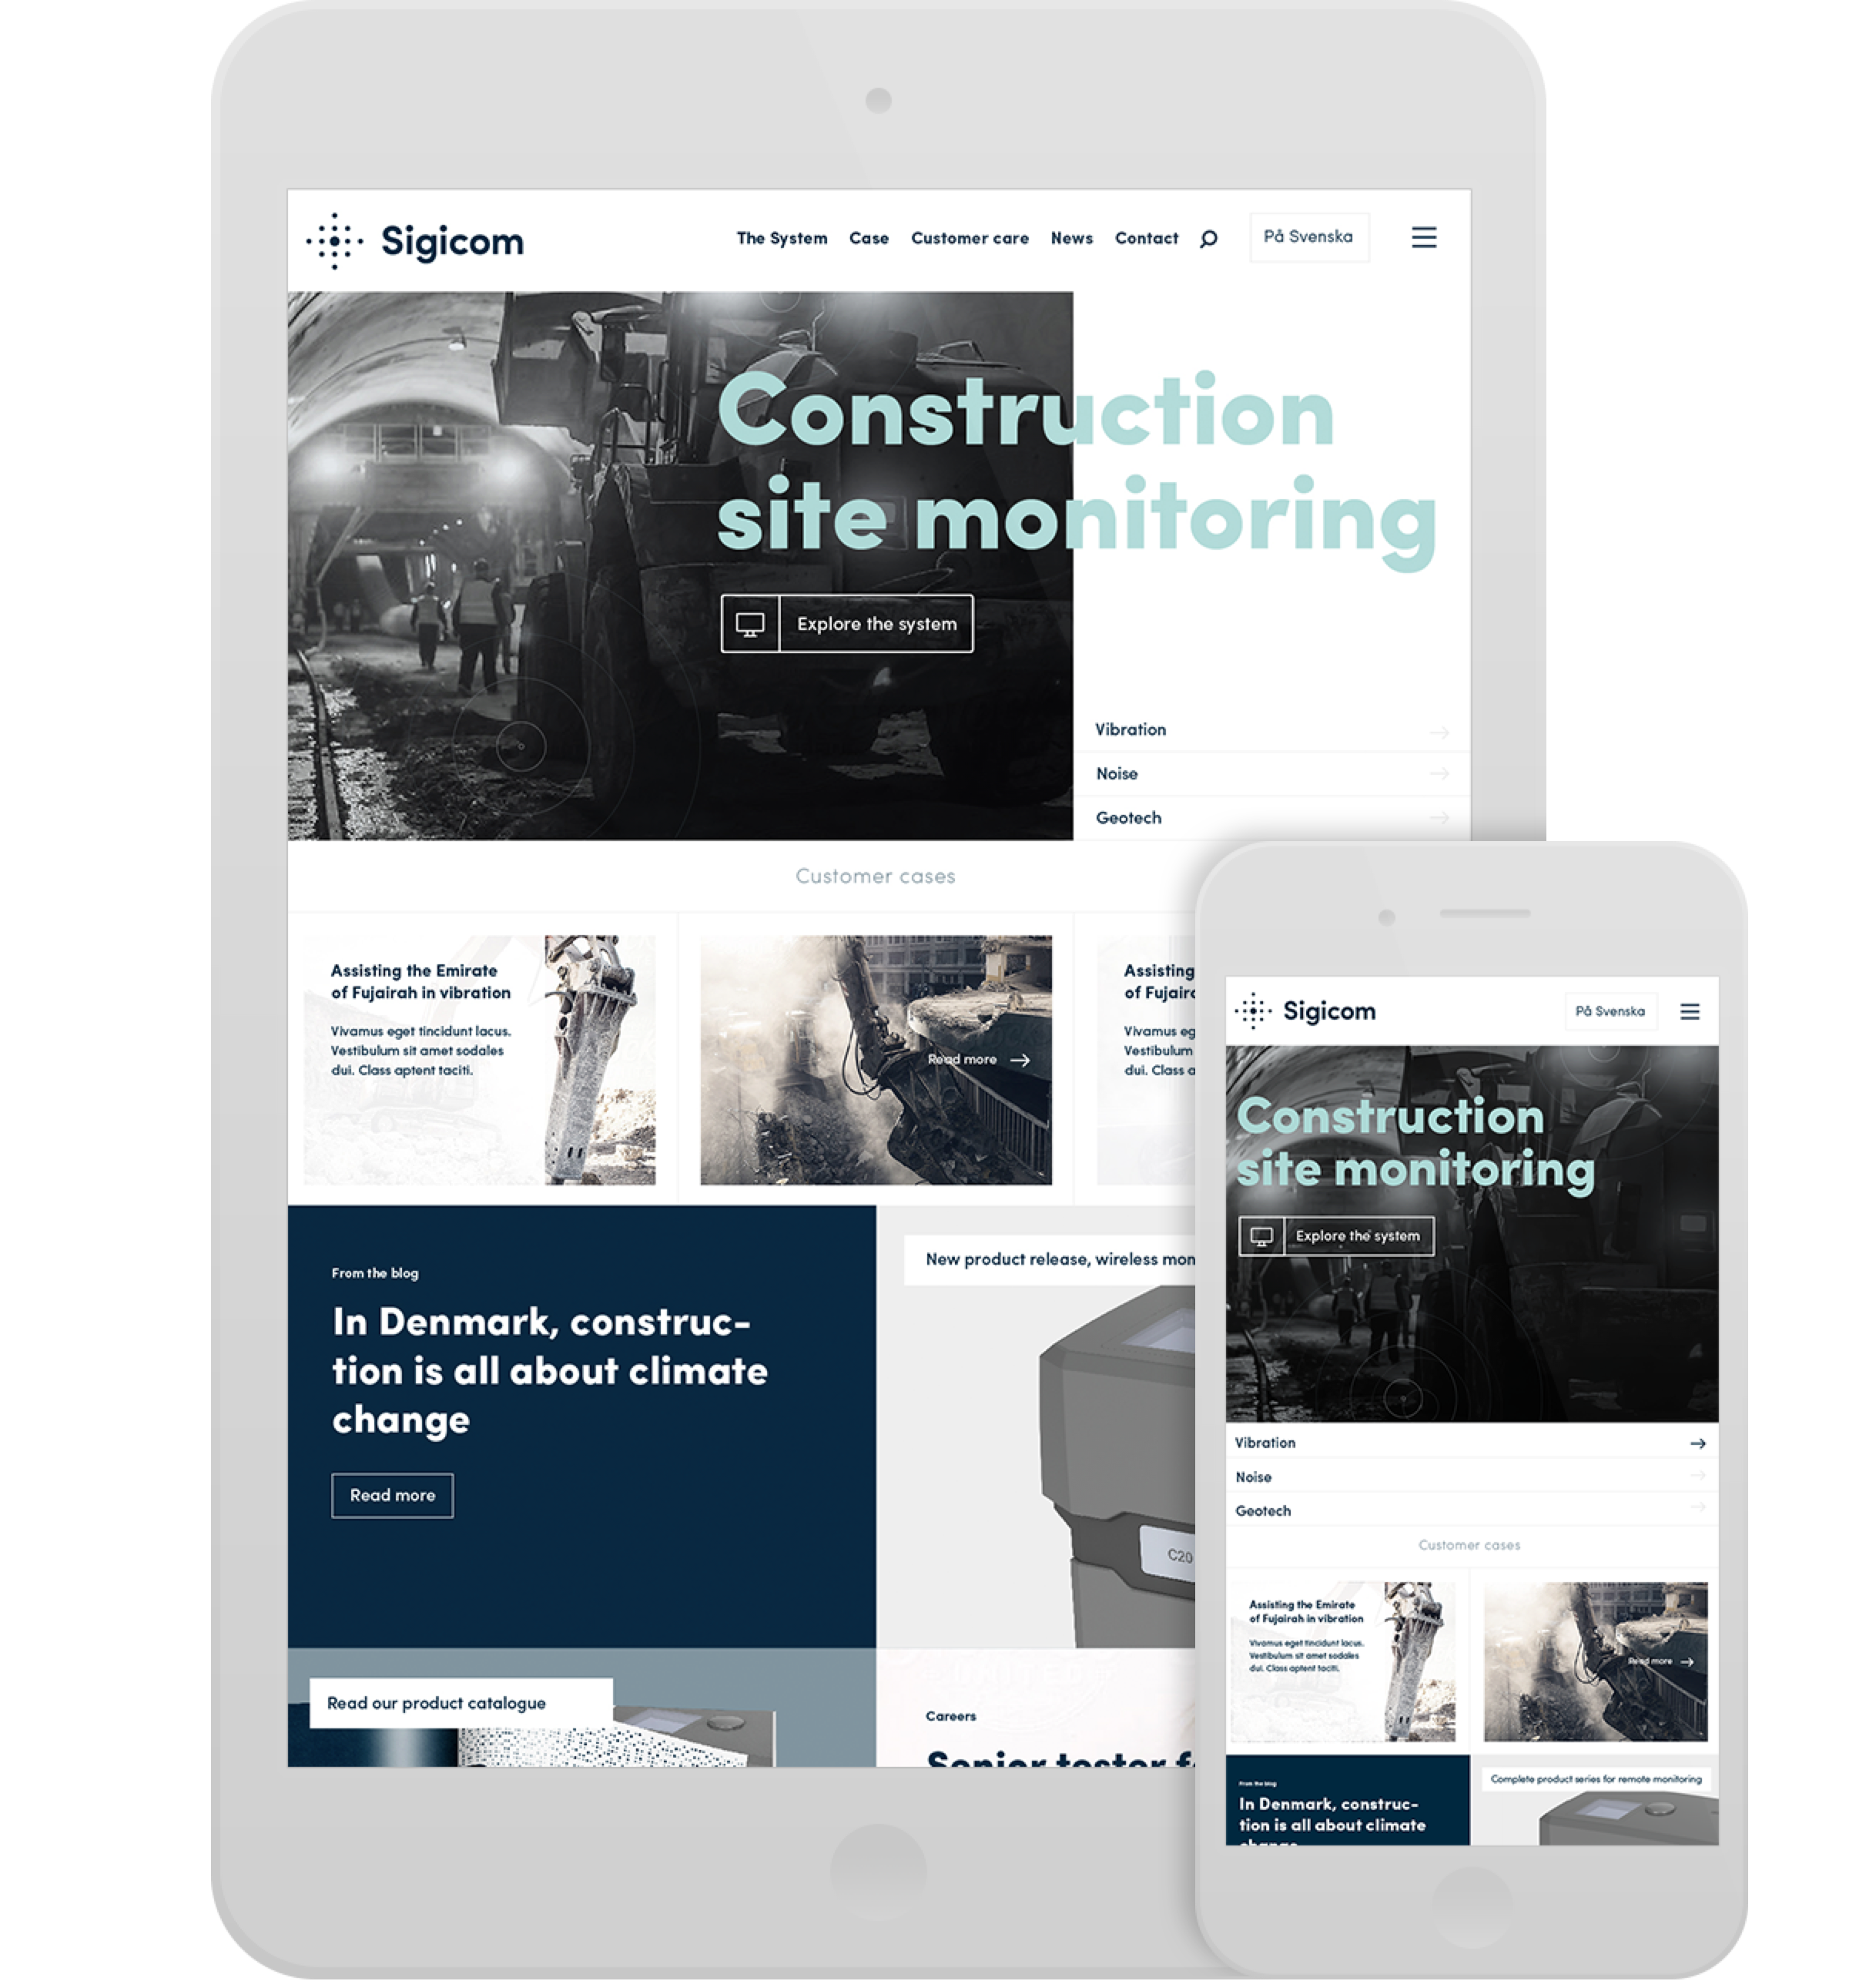 Digital strategy and design for Sigicom brand. Material from the process. Sigicoms web site mounted in Tablet and smartphone.